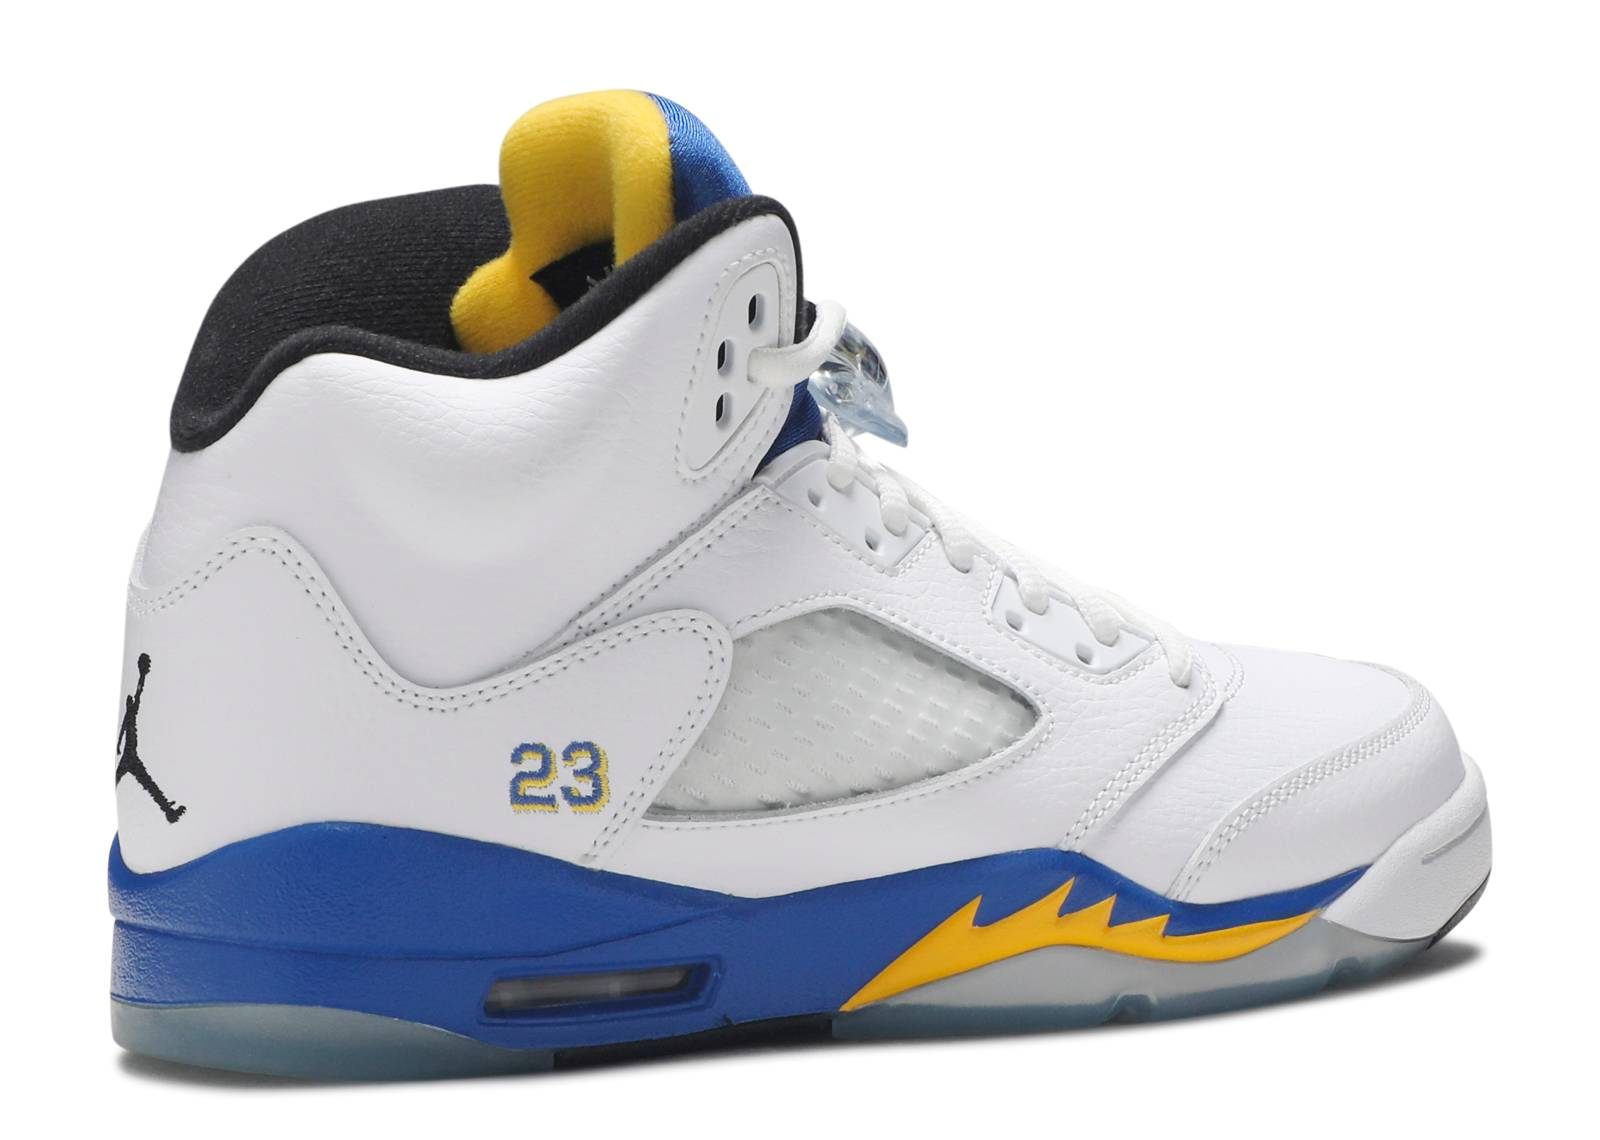 new product 34130 062bf ... royal varsity maize all you need discount code for air jordan 5 retro  gs laney 2013 air jordan 440888 189 white vrst ...